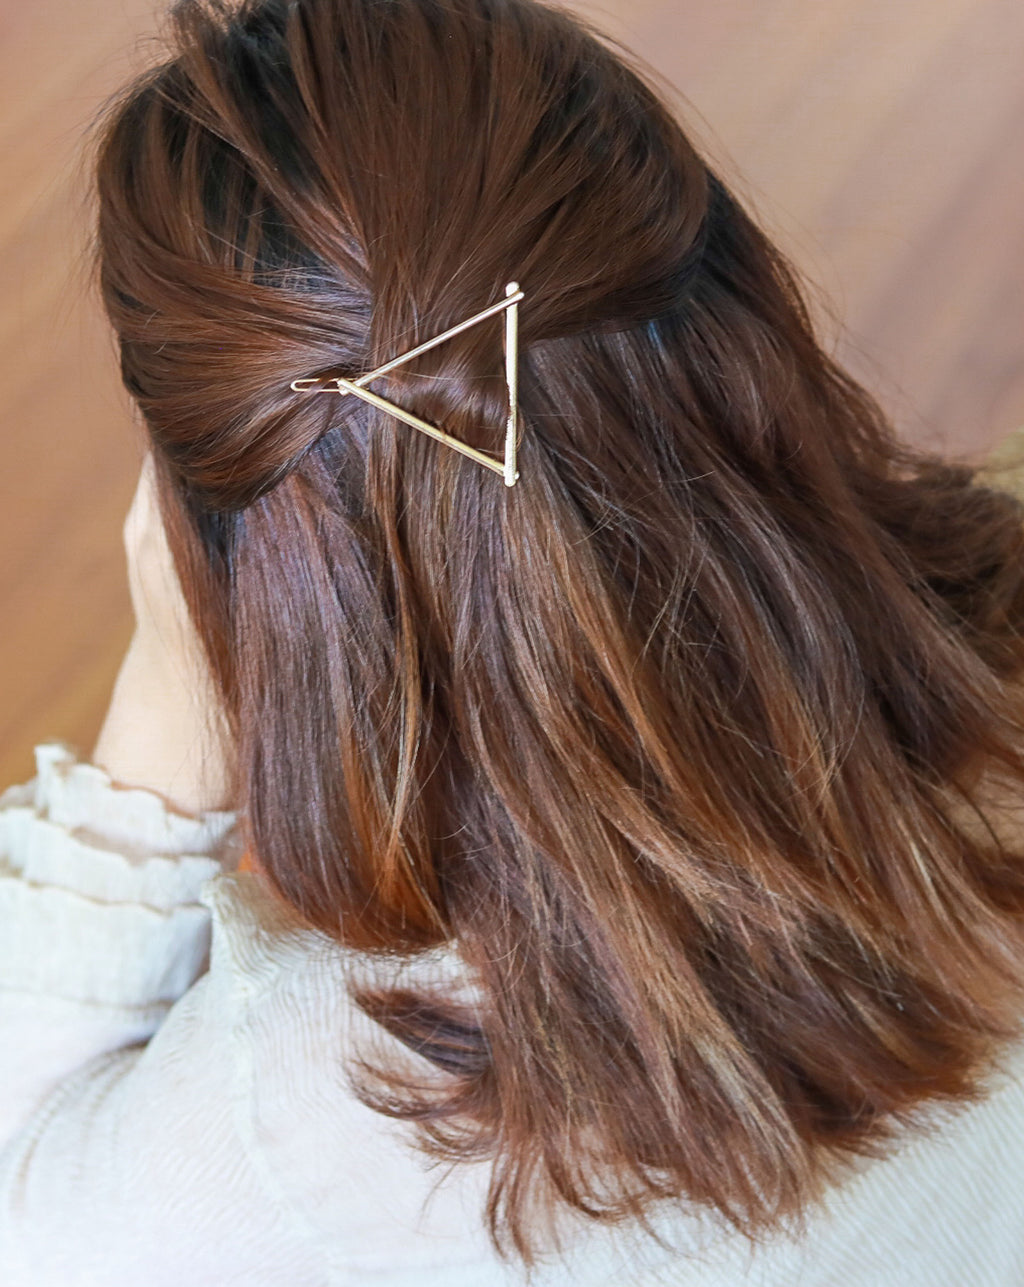 CLASSIC TRIANGLE Hair Clip in Gold - THE HEXAD